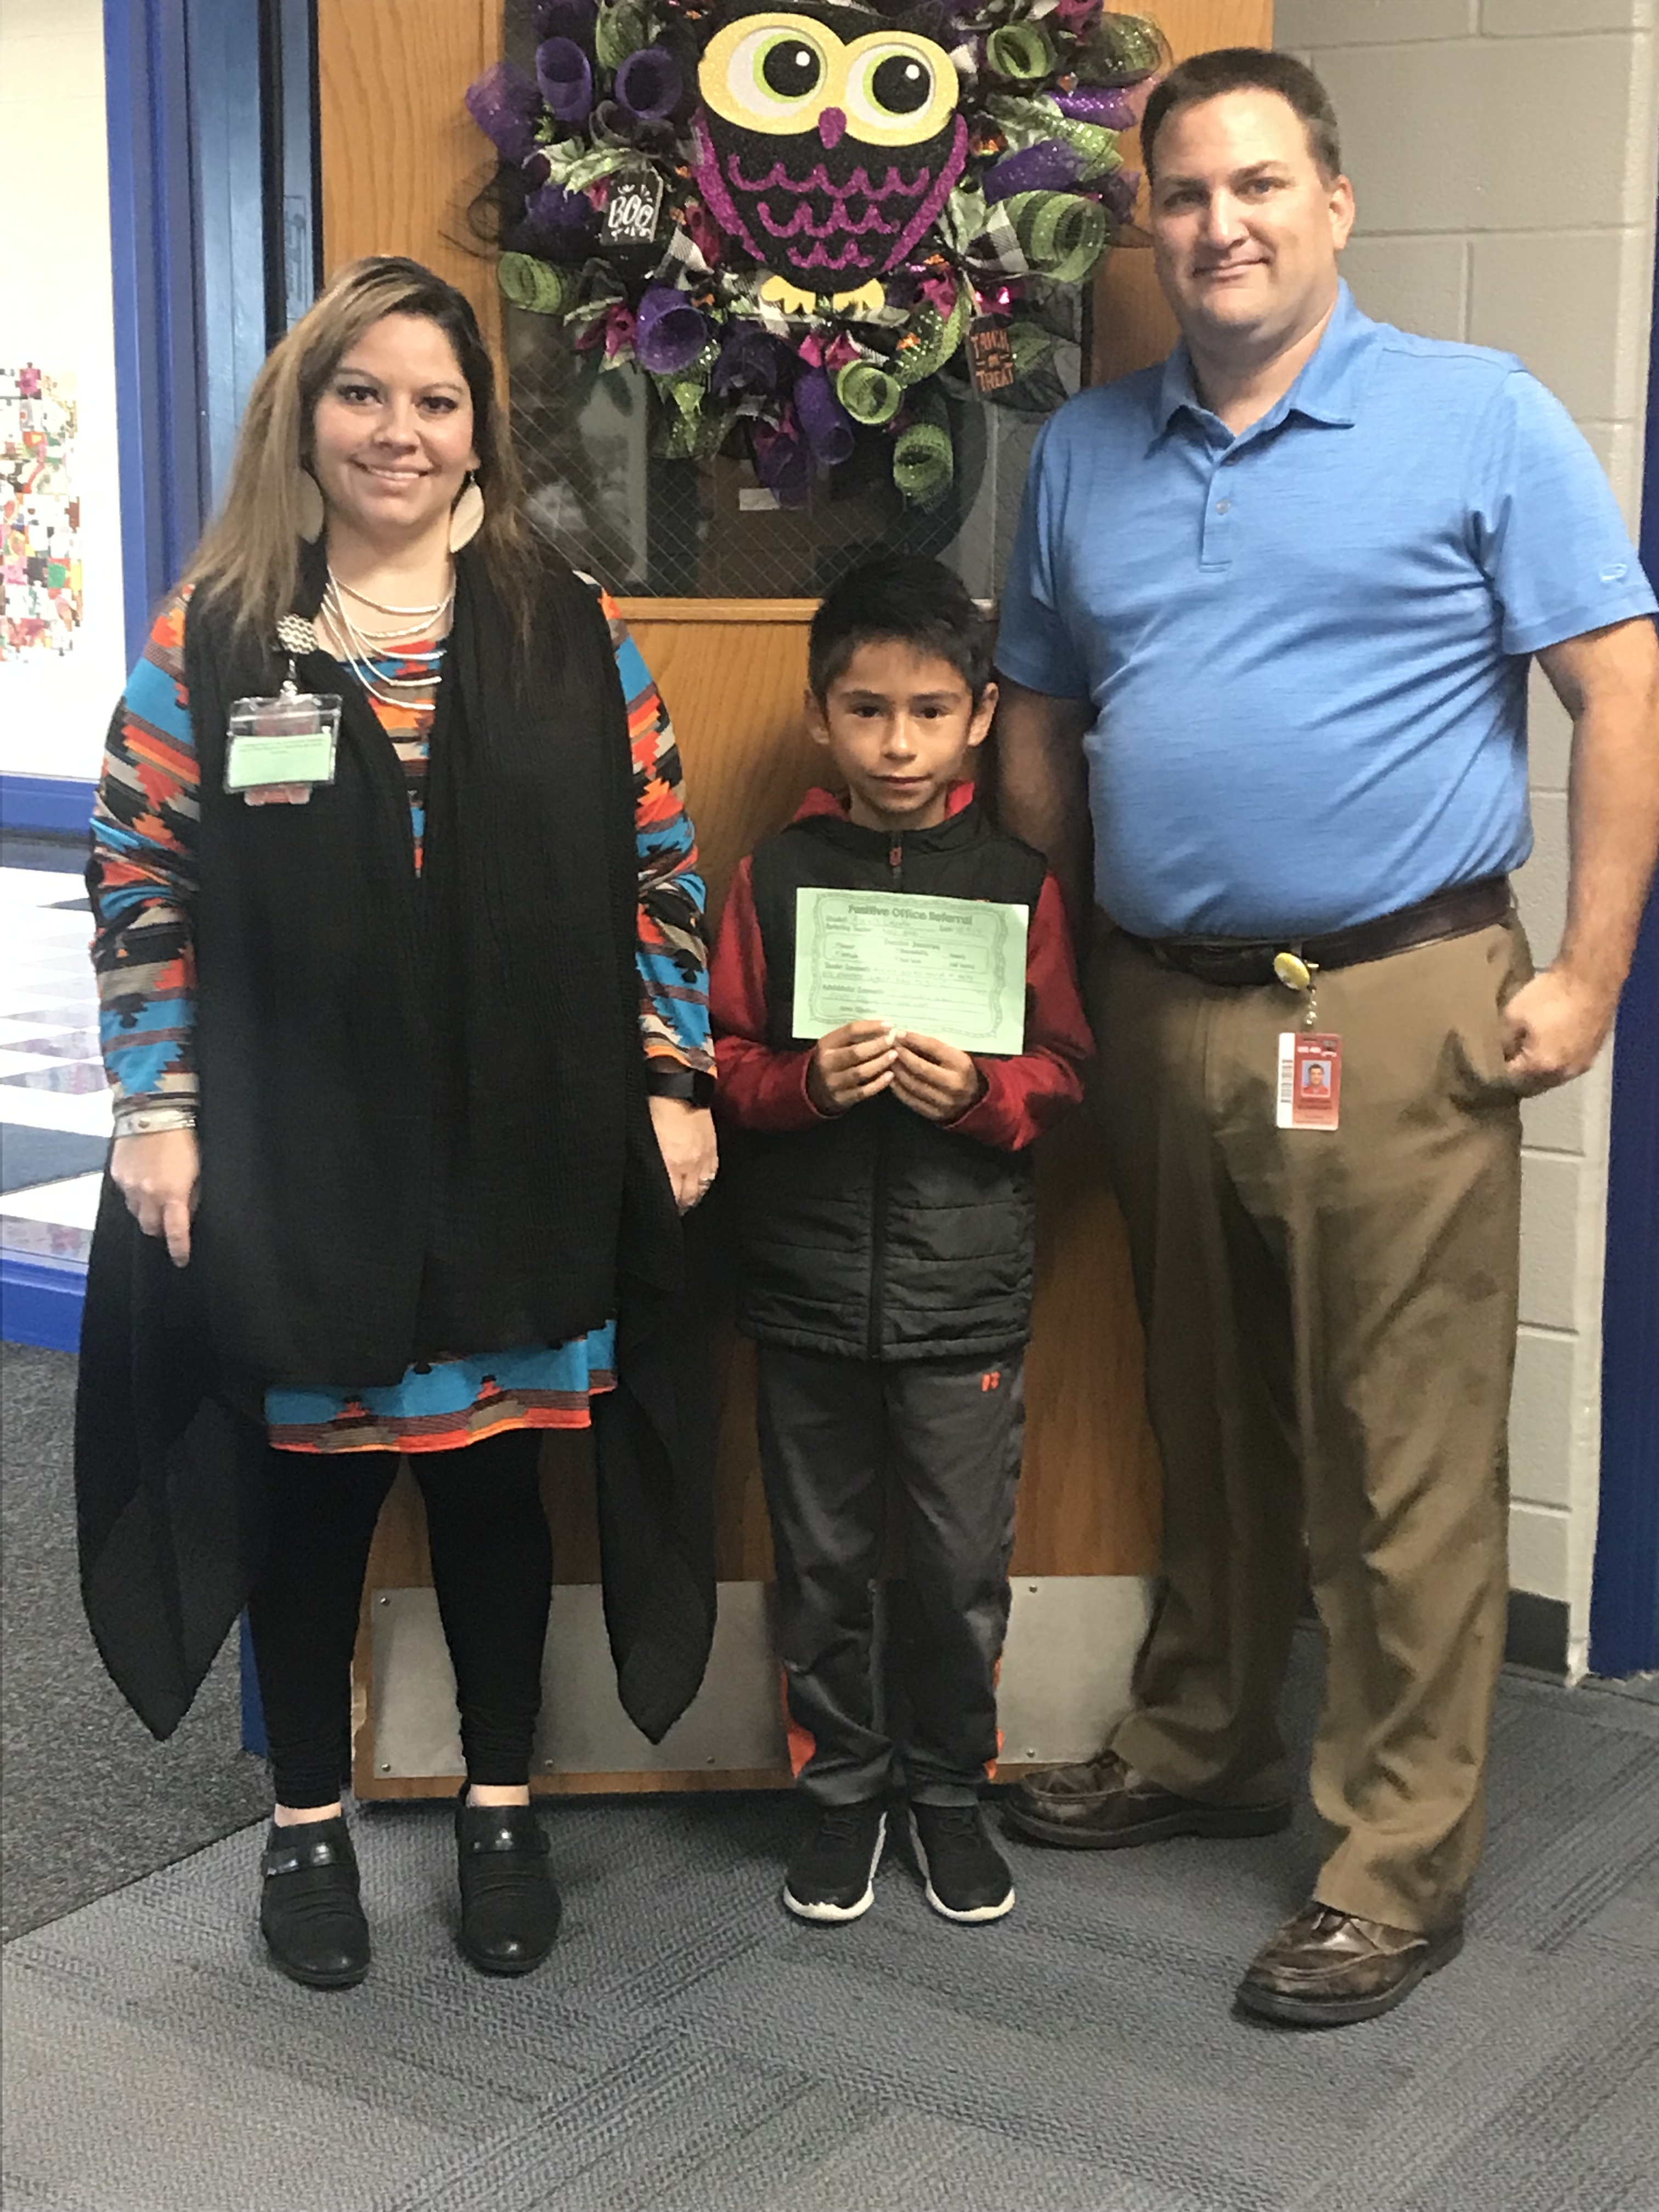 We love our Positive Office Referrals! Congratulations Sunflower Bees